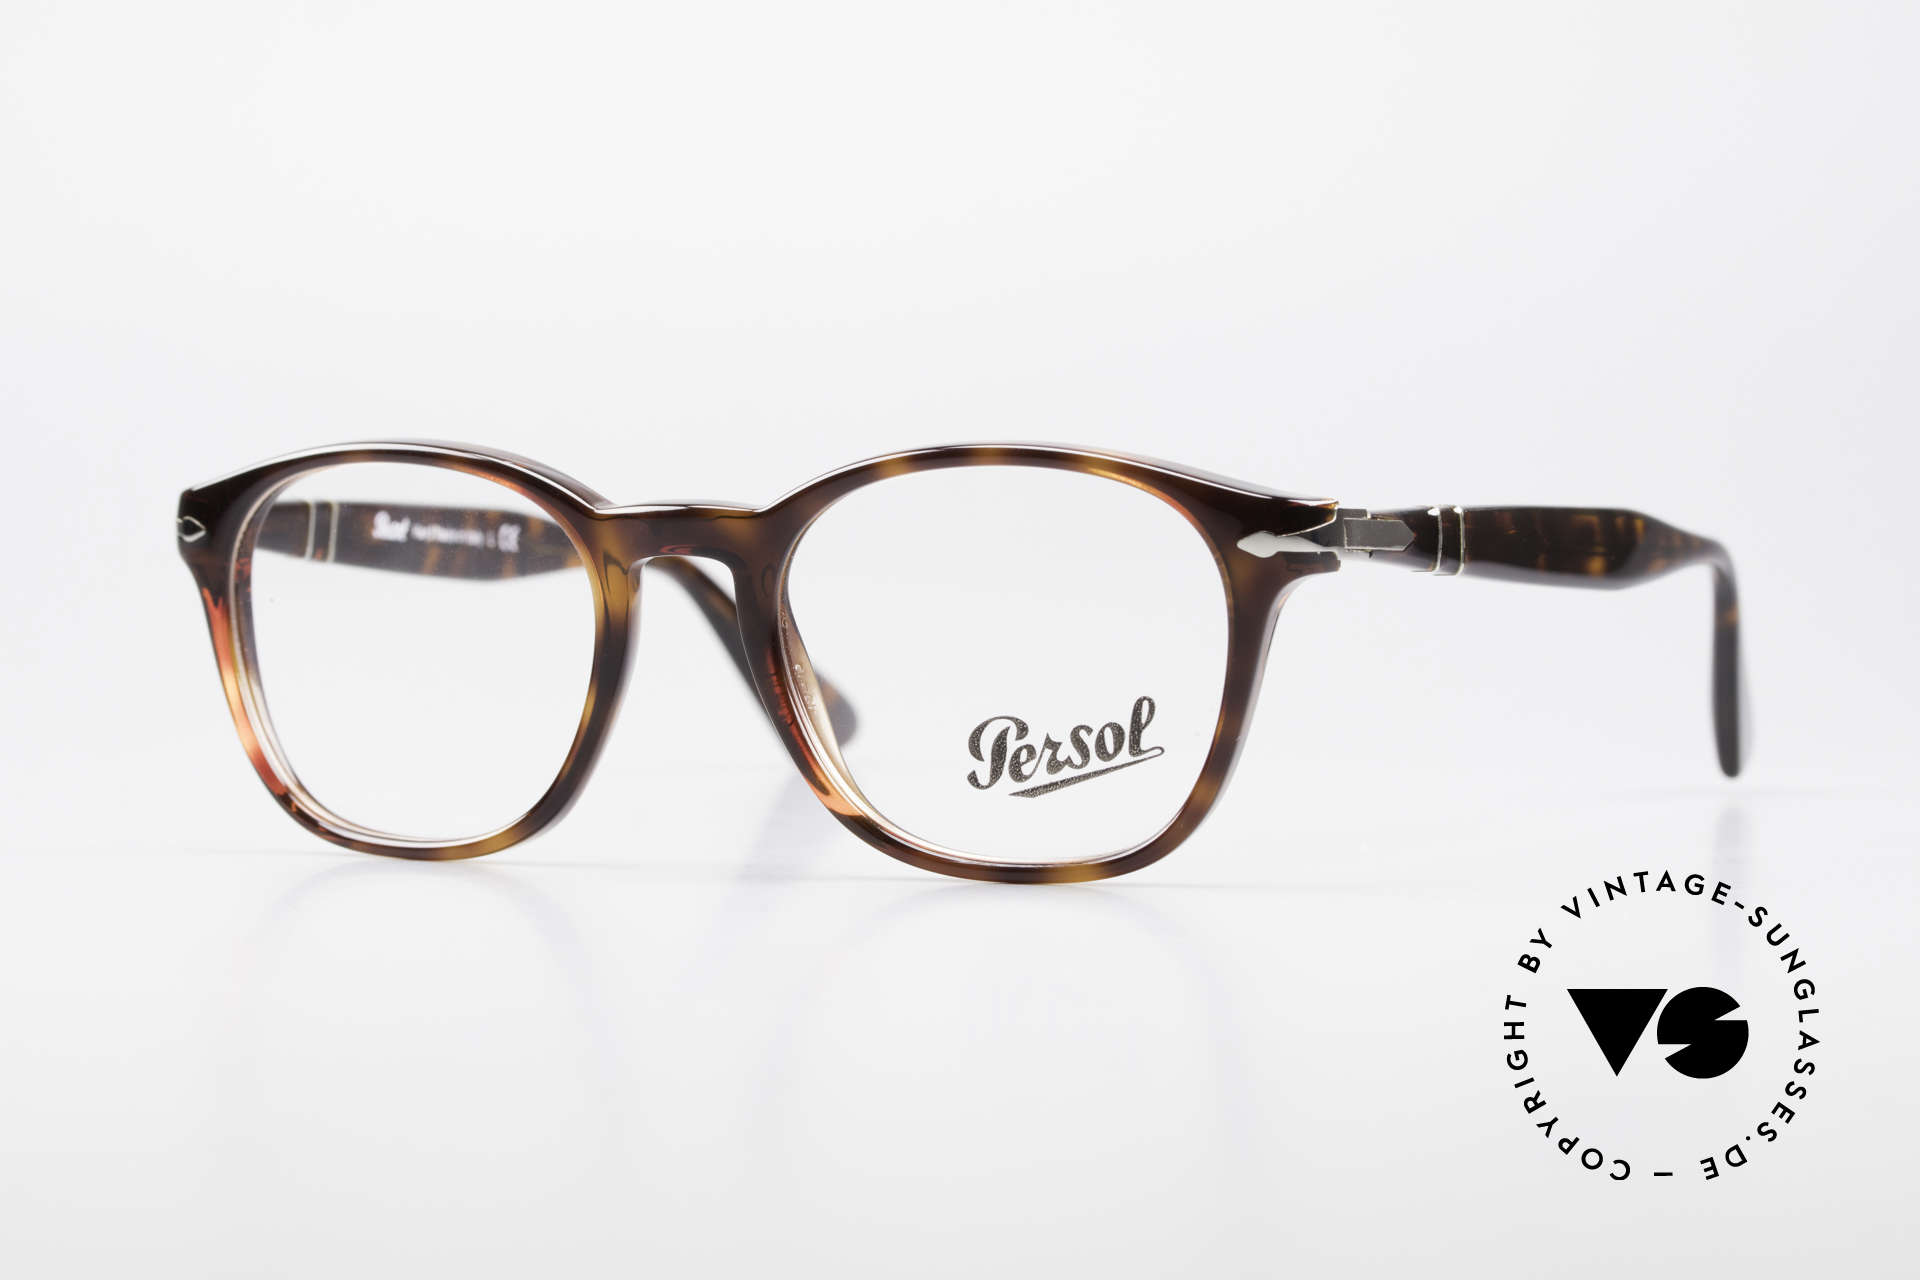 Persol 3122 Classic Square Panto Glasses, elegant Persol frame with flexible spring hinges, Made for Men and Women